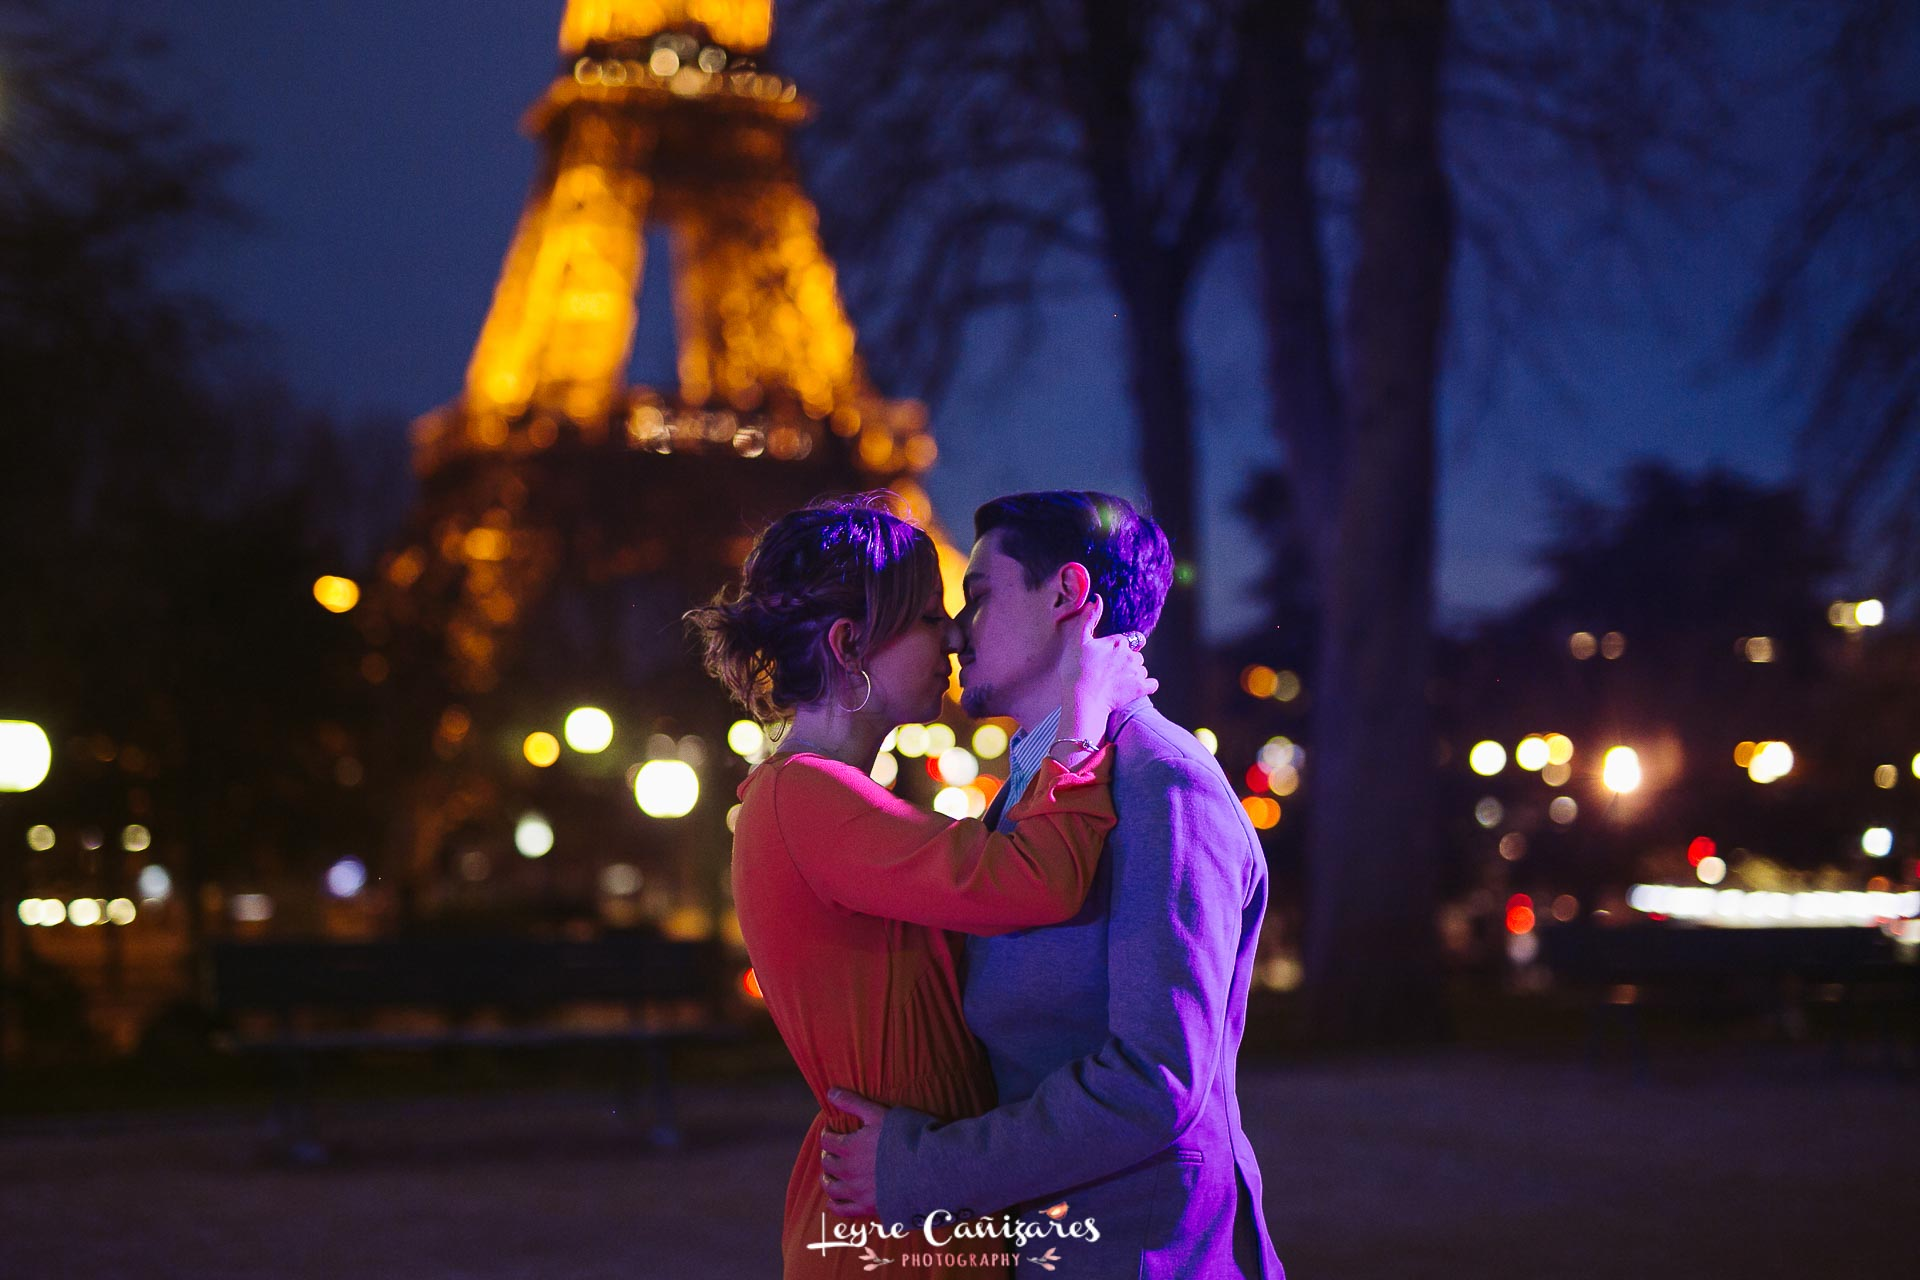 Engagement photography in Trocadero at night, Paris